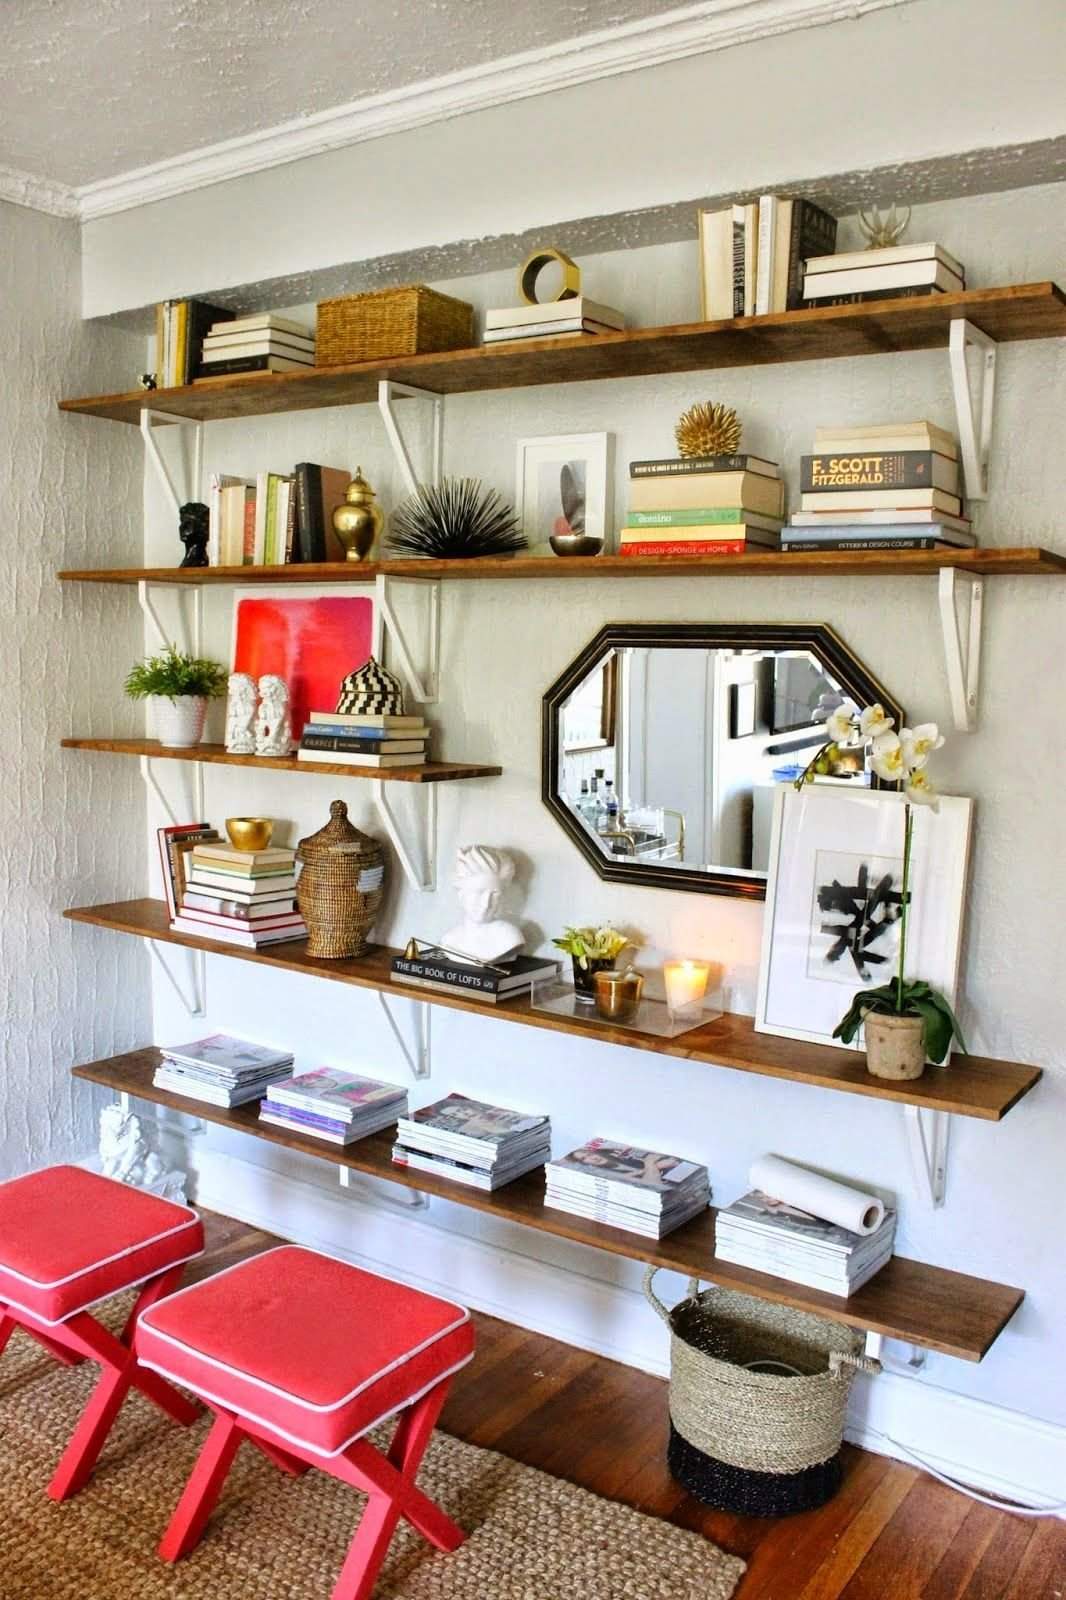 Best Of The Nest August Features I Love Shelves Ikea With Pictures